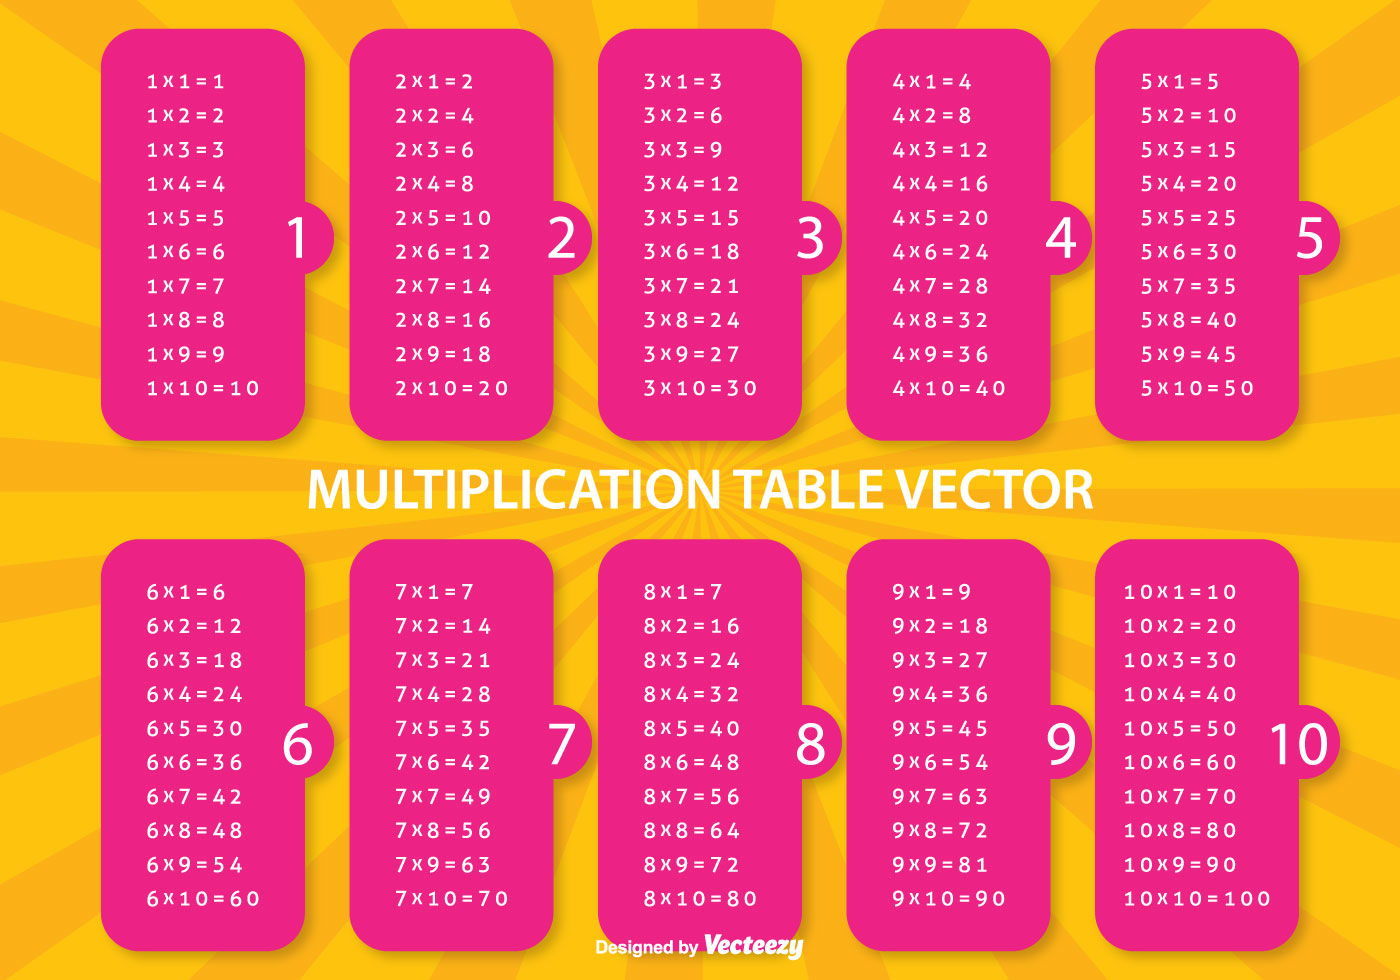 Multiplication Table Illustration - Download Free Vector Art, Stock  Graphics & Images